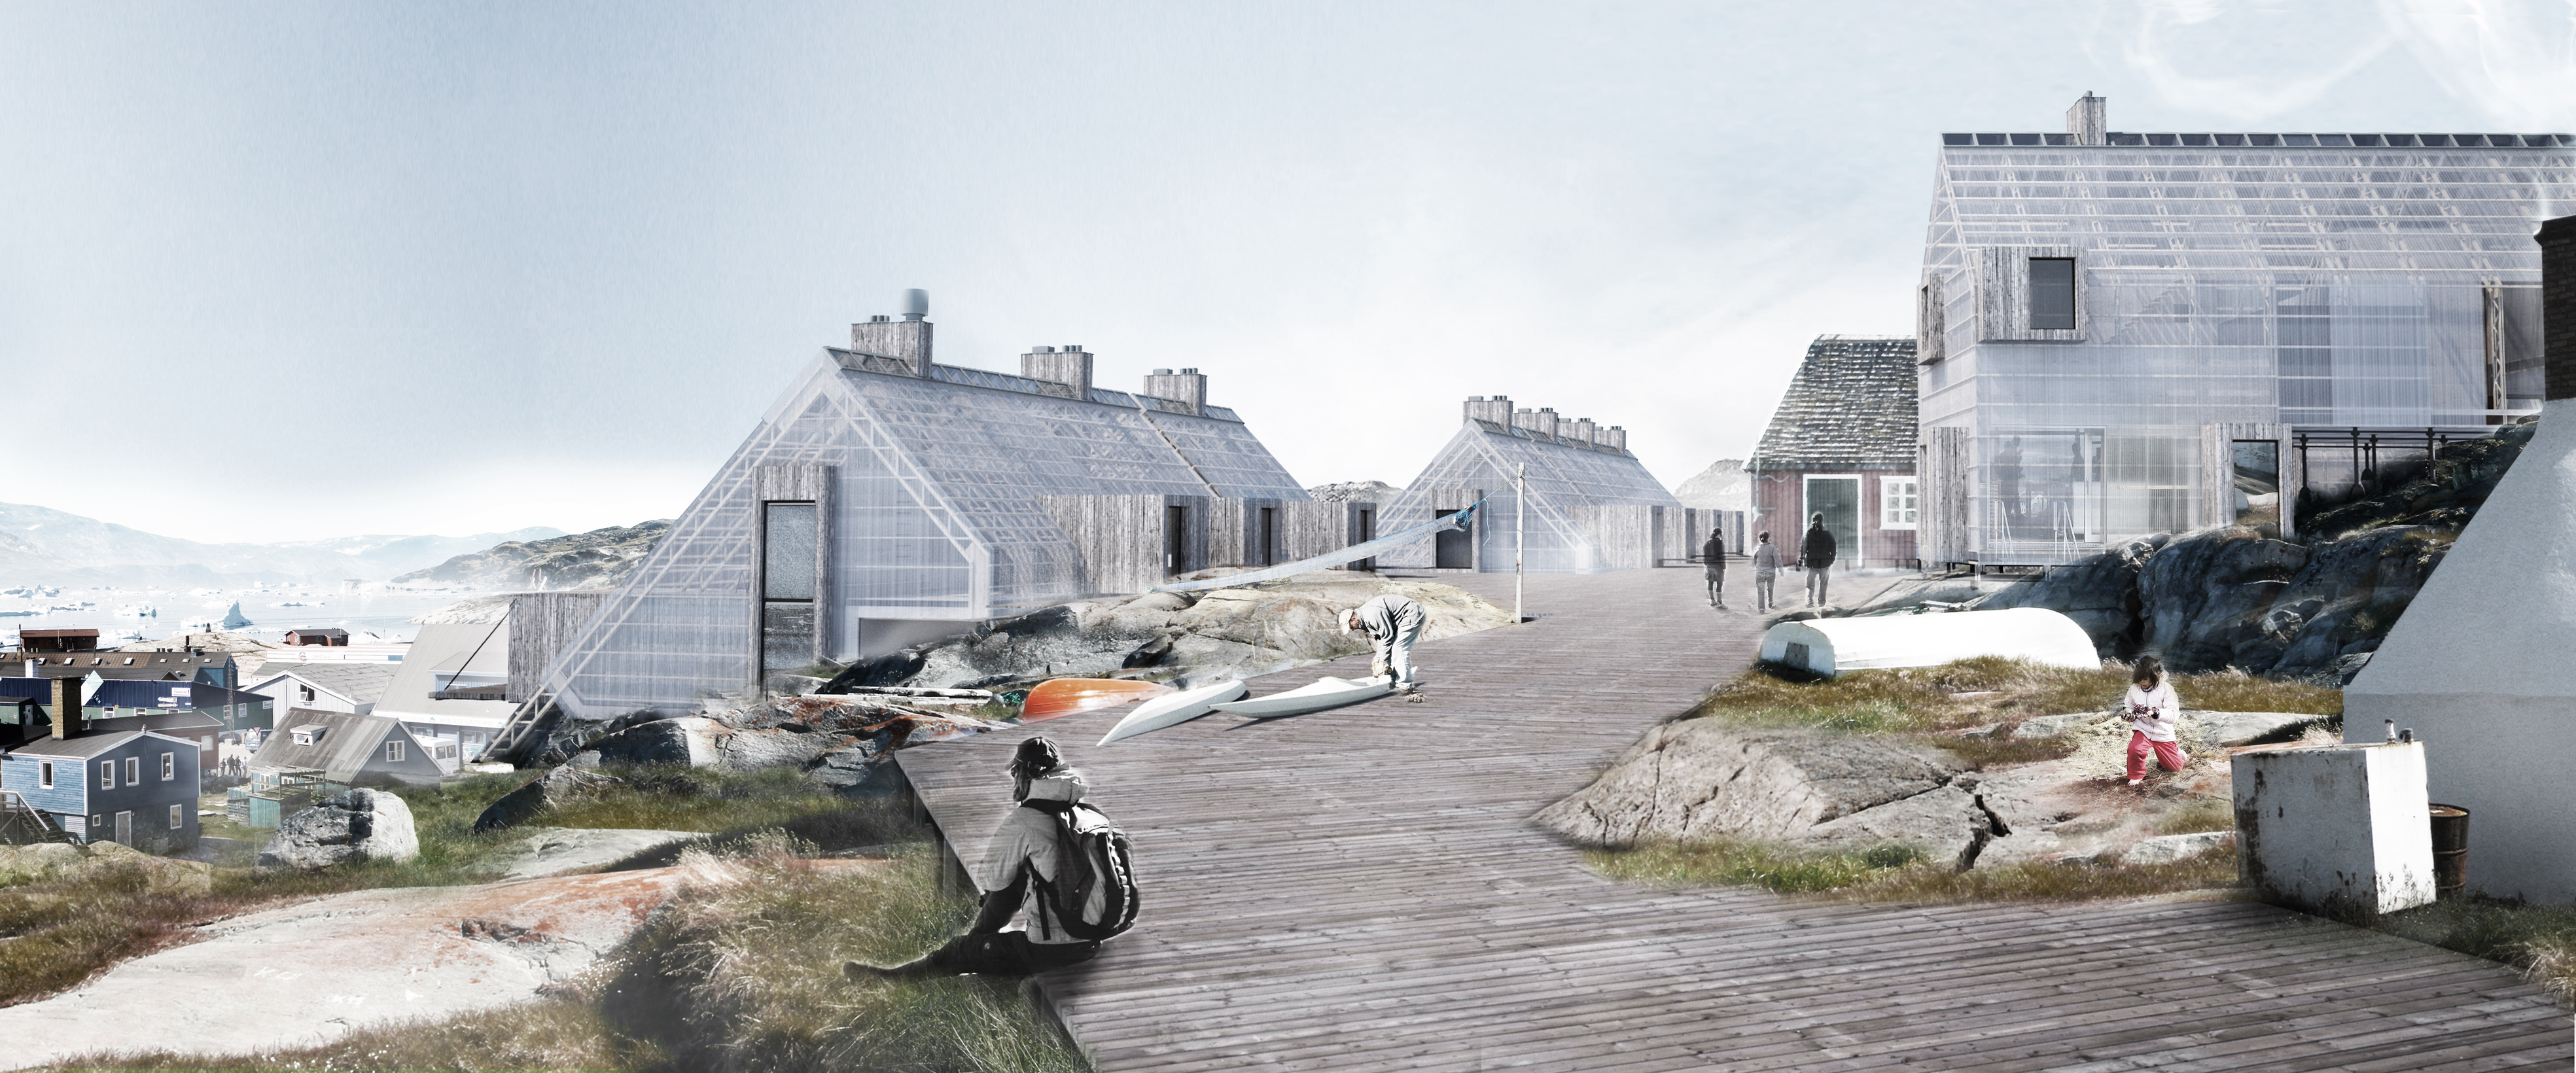 Architects imagine a new Greenland at Venice Biennale